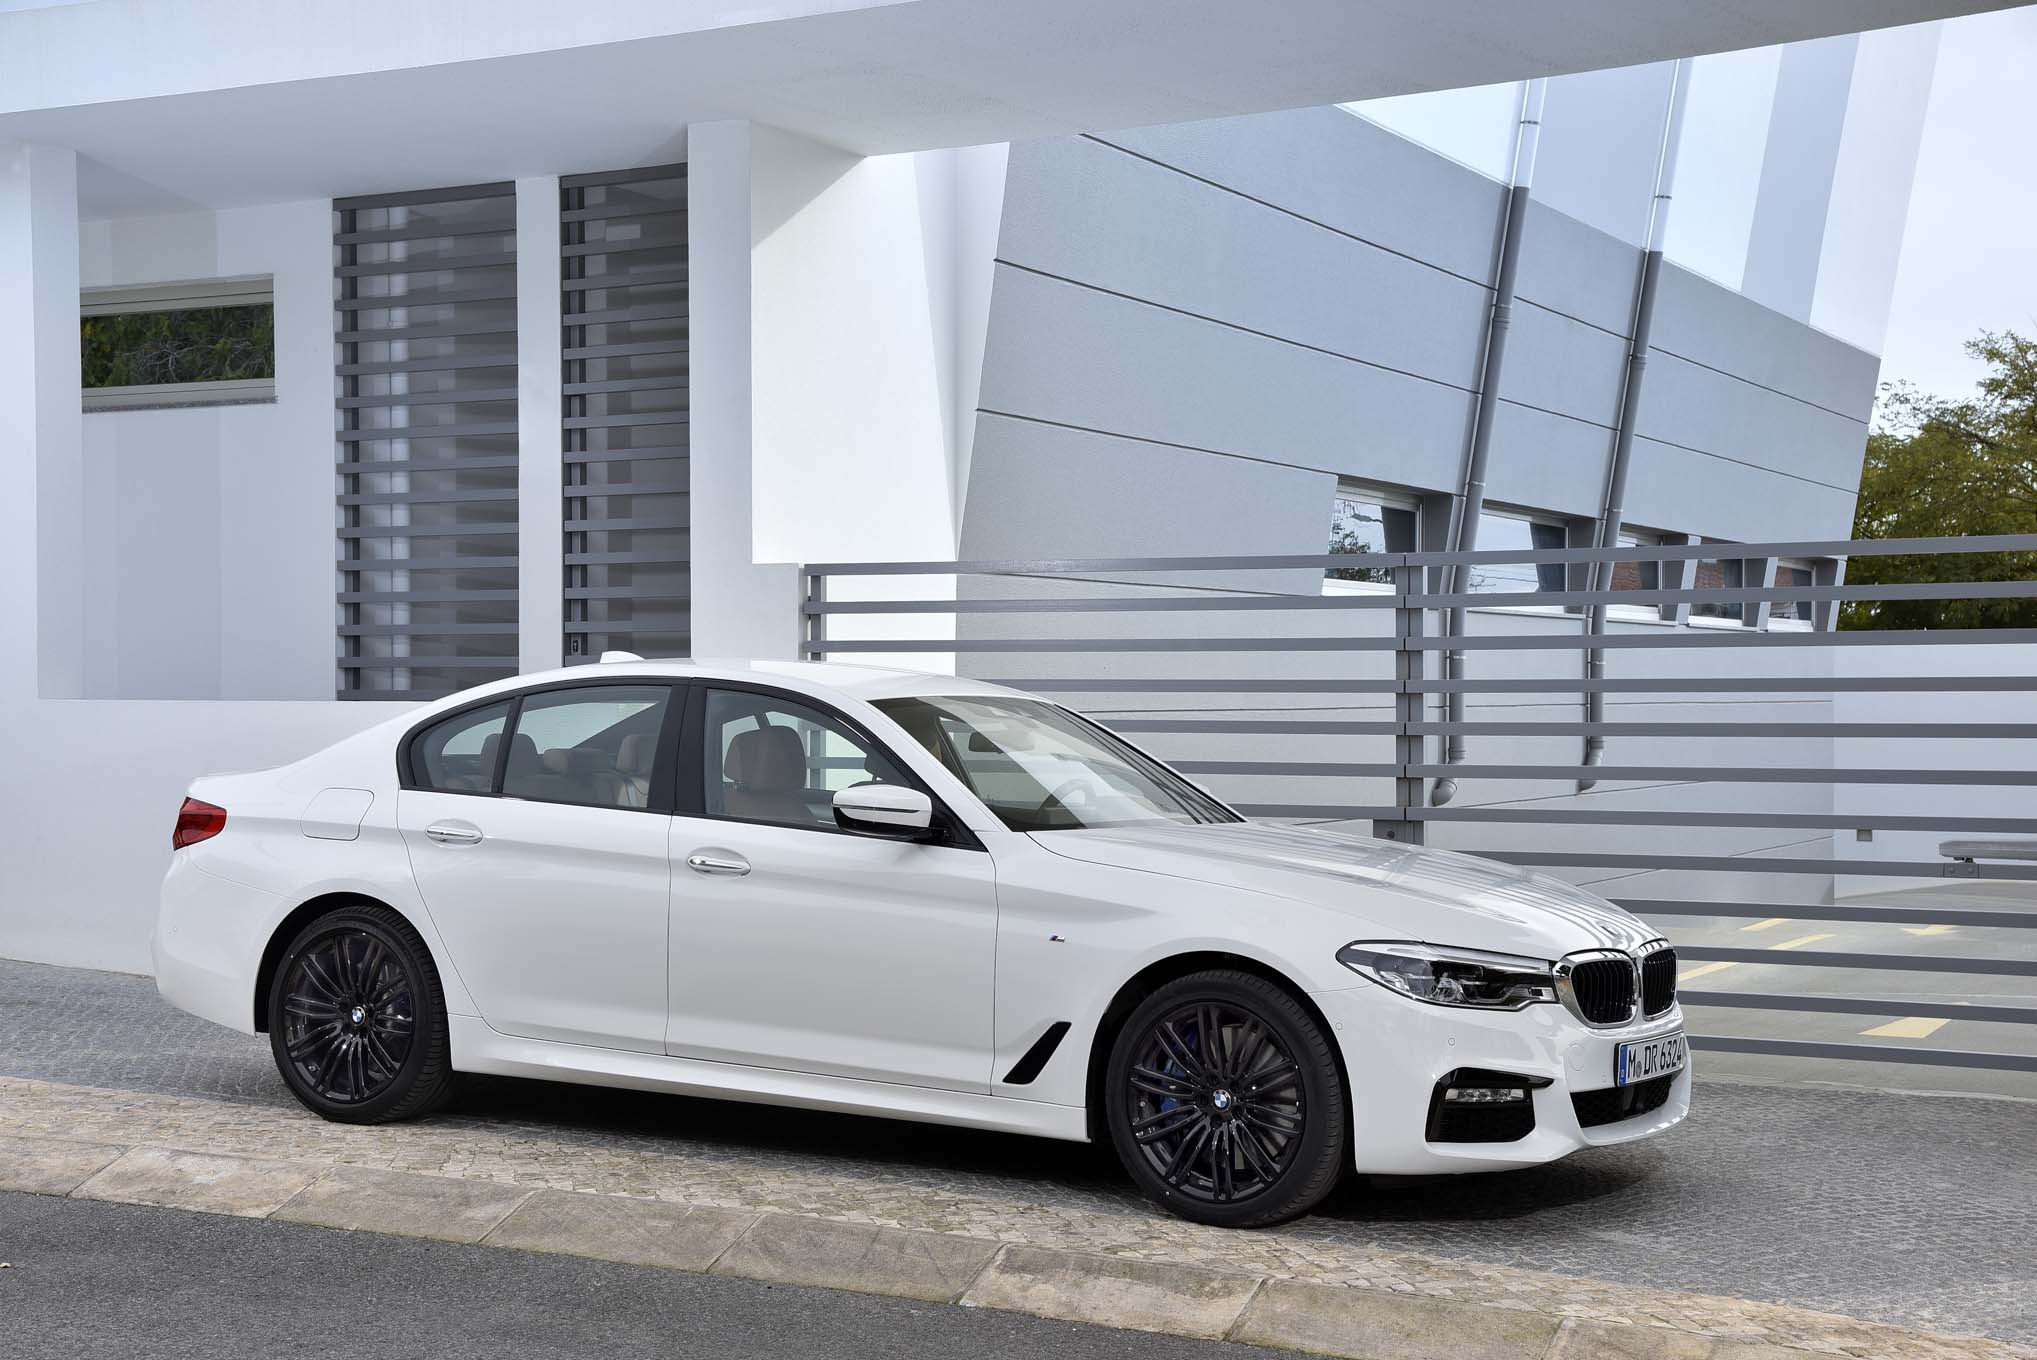 2017 BMW 540i M Sport Exterior Side And Front (View 30 of 35)